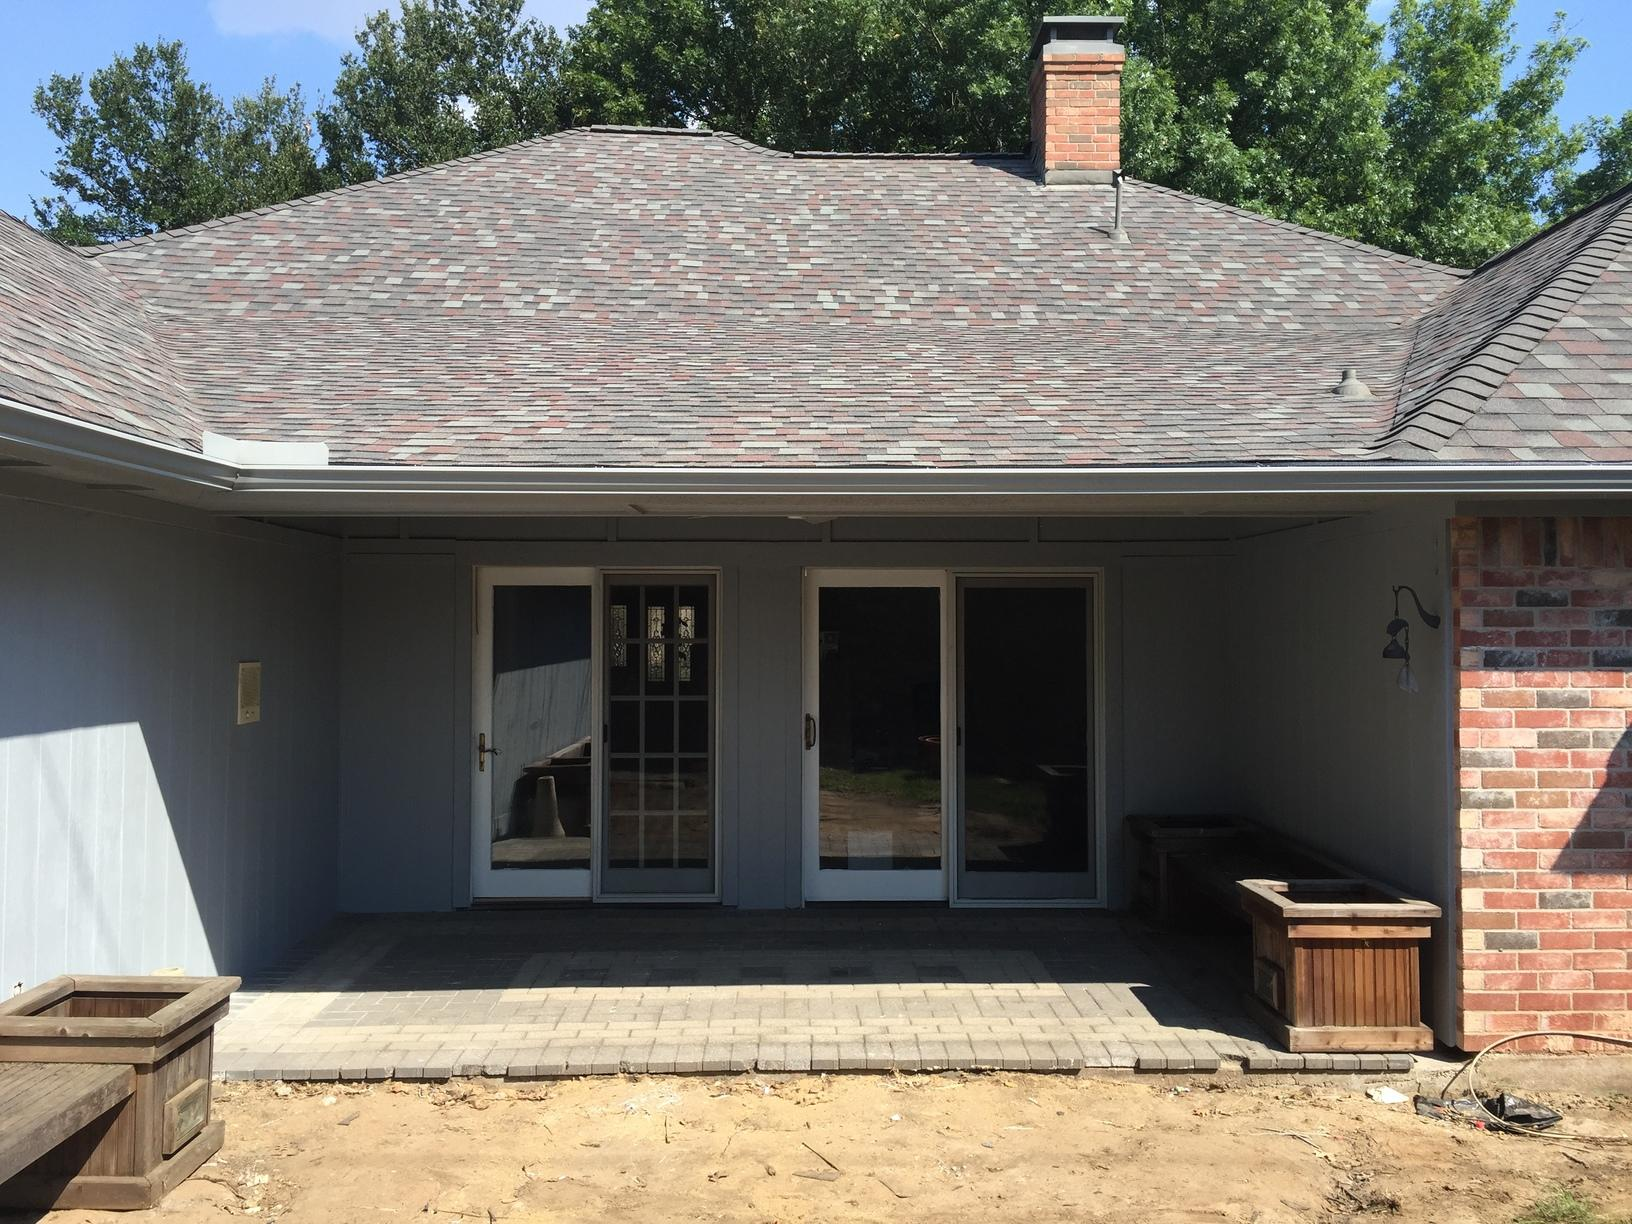 Roof Add-on for Patio in Arlington, TX - After Photo